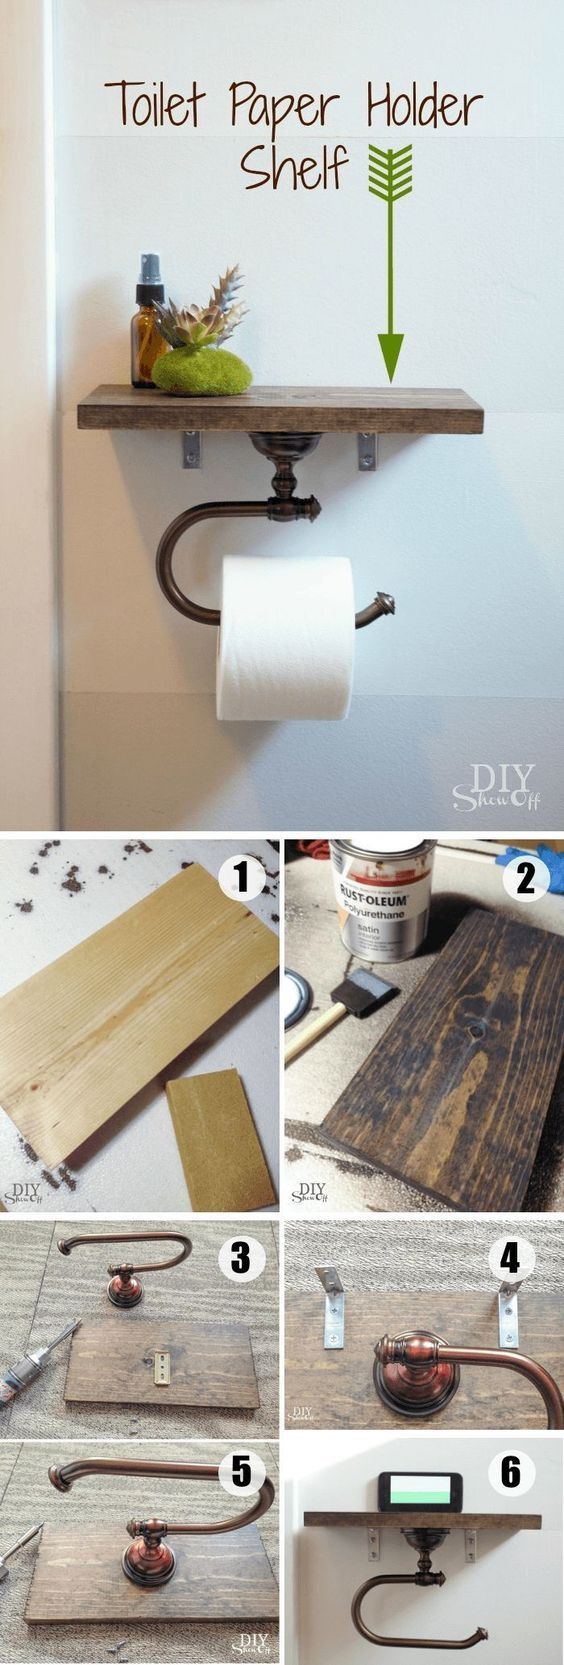 The 25+ best ideas about Toilet Accessories on Pinterest | Kids ... - 15 Totally Unusual DIY Toilet Paper Holders